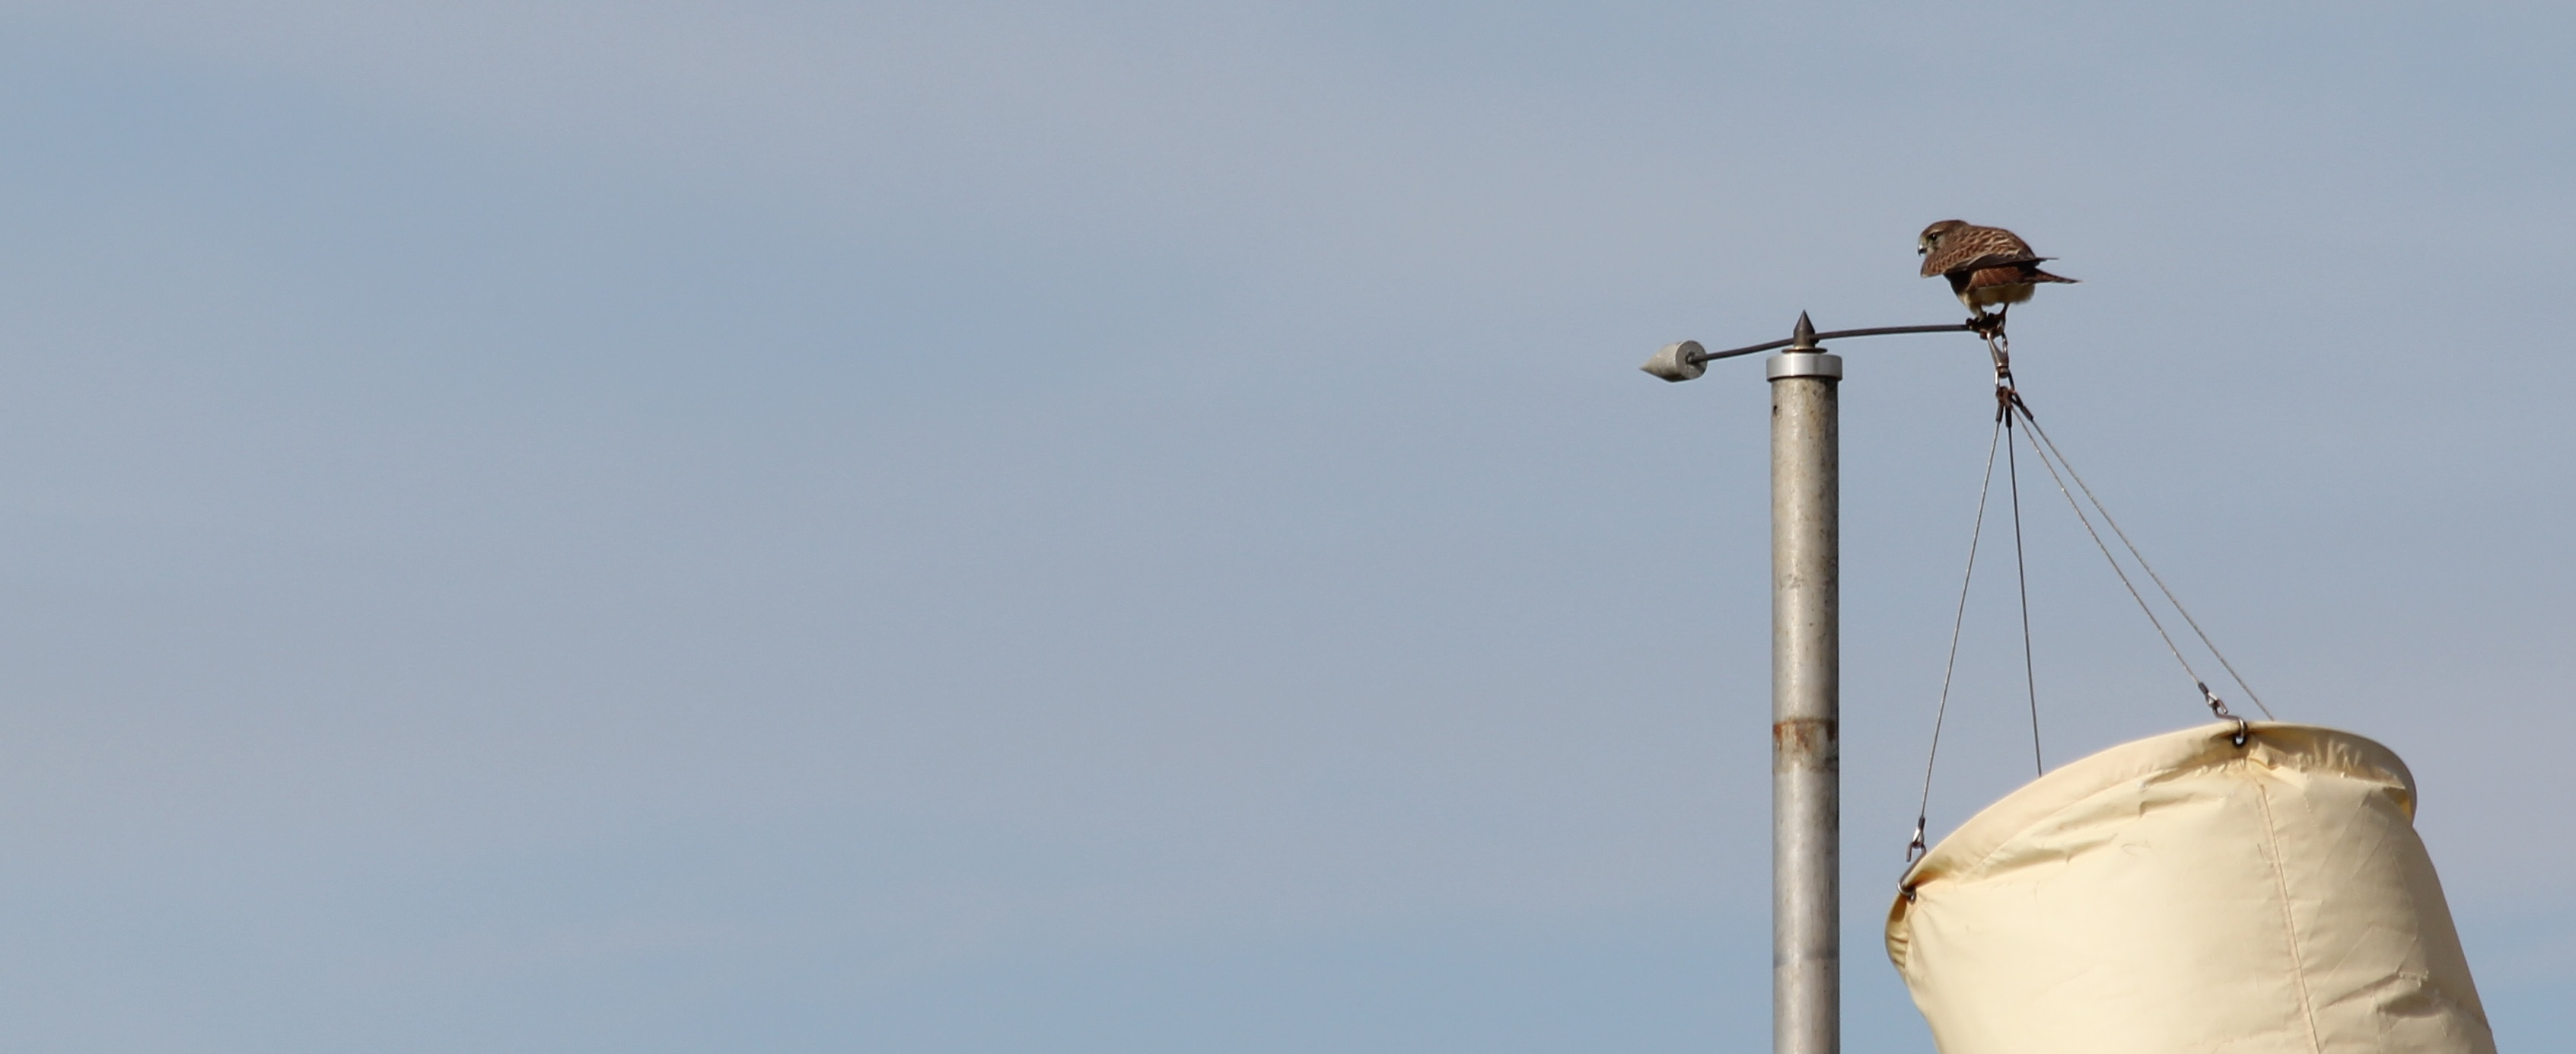 Kestrel on windsock - Banner